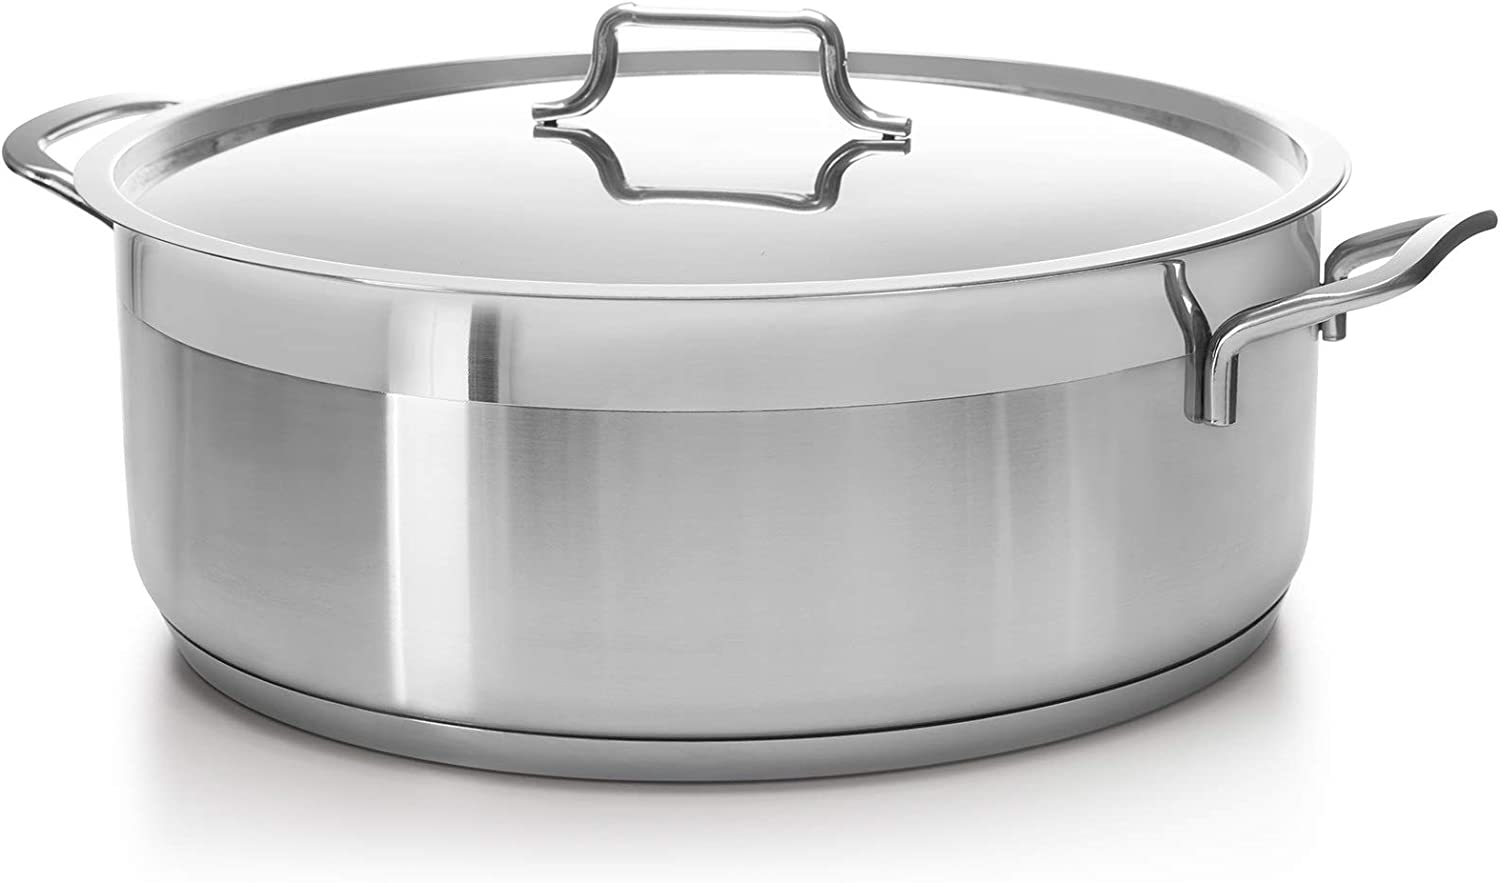 Hascevher Classic 18/10 Stainless Steel Dutch Oven Covered Stockpot Cookware Induction Compatible Oven Safe 8.5 Quart HD8